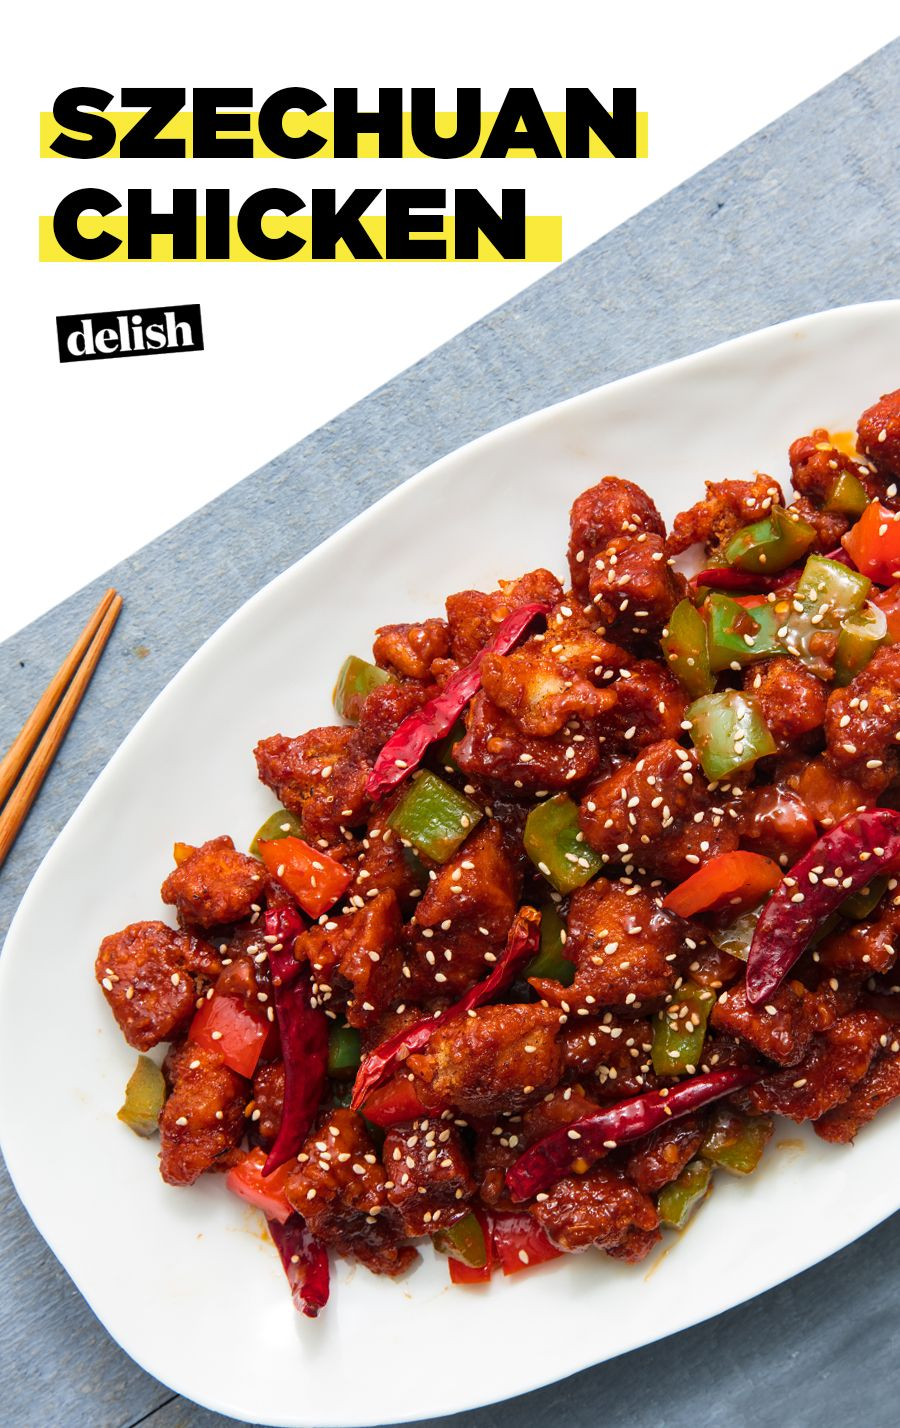 Warning This Szechuan Chicken Is Extra Hot Recipe Szechuan Chicken Recipes Chicken Recipes